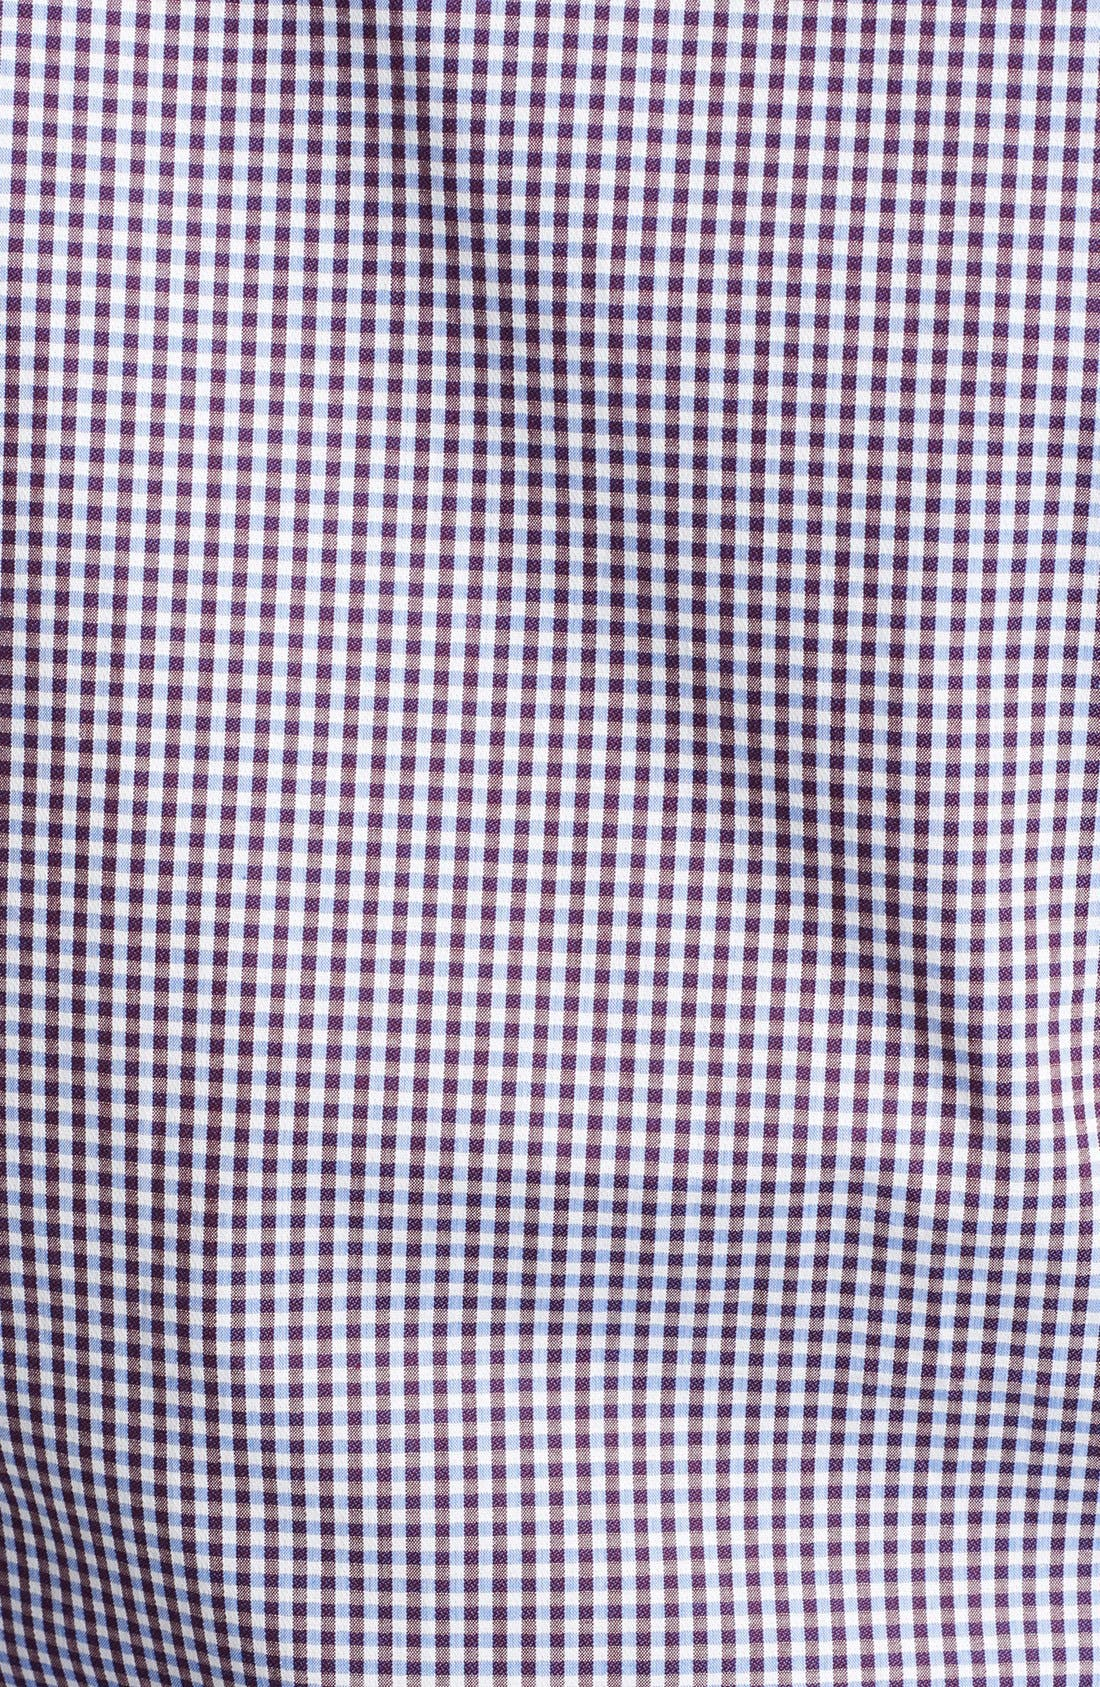 Alternate Image 3  - Z Zegna Microcheck Sport Shirt